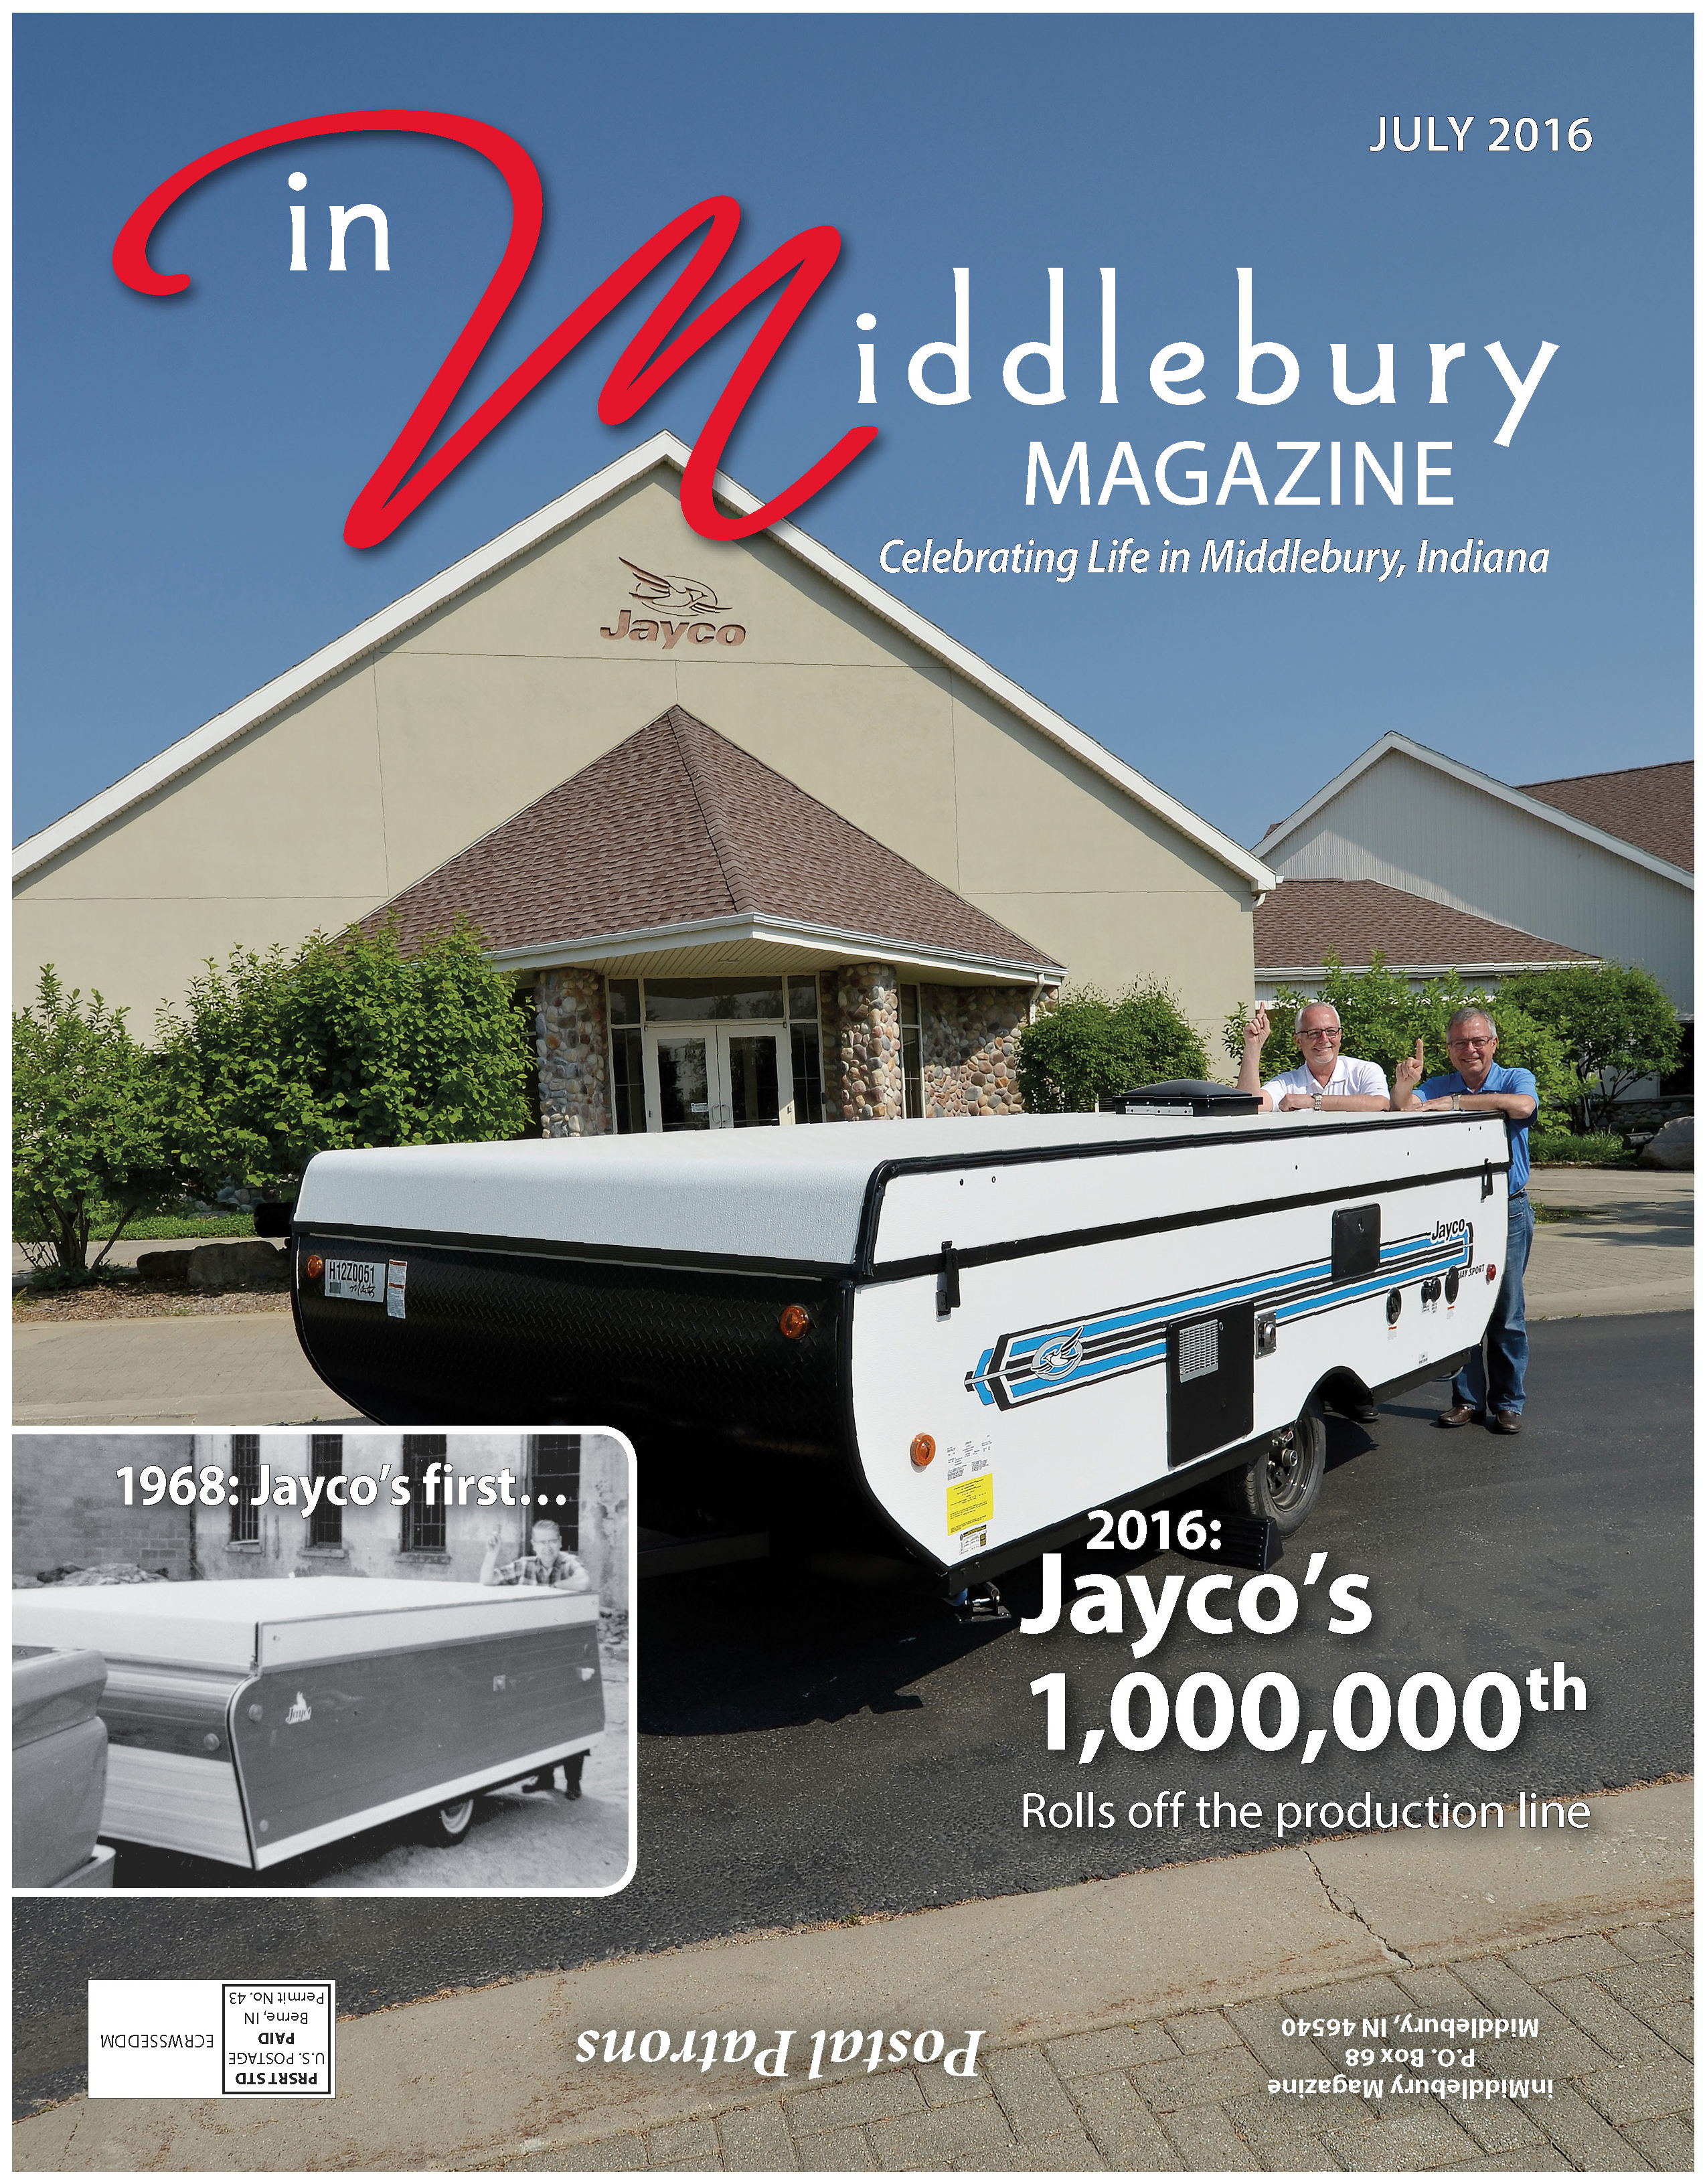 July 2016 issue